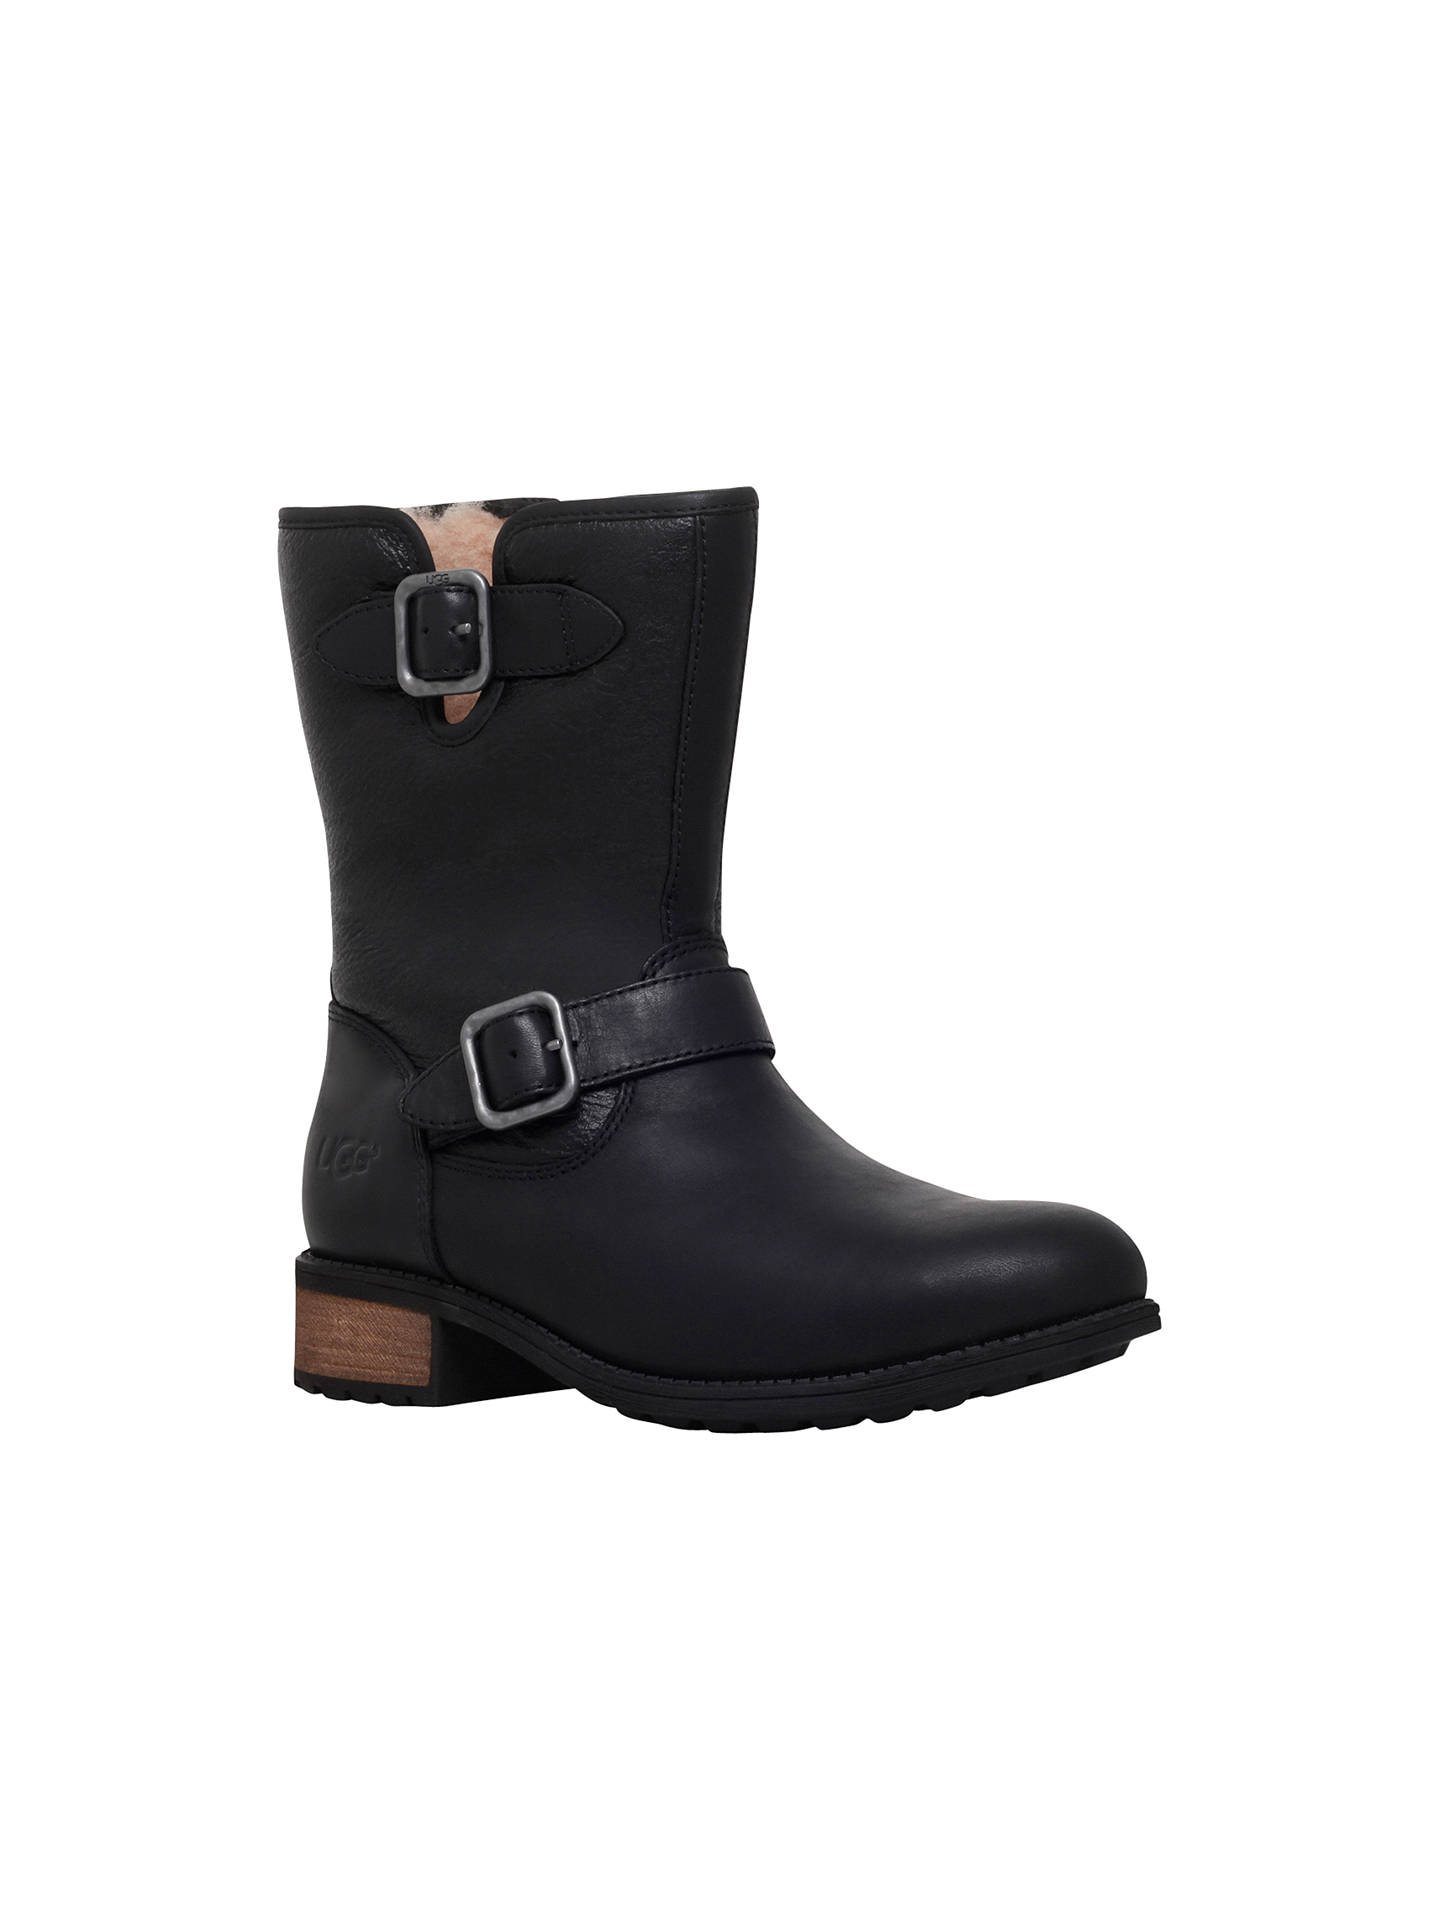 55ba8f08158 UGG Chaney Buckle Detail Ankle Boots, Black Leather at John Lewis ...